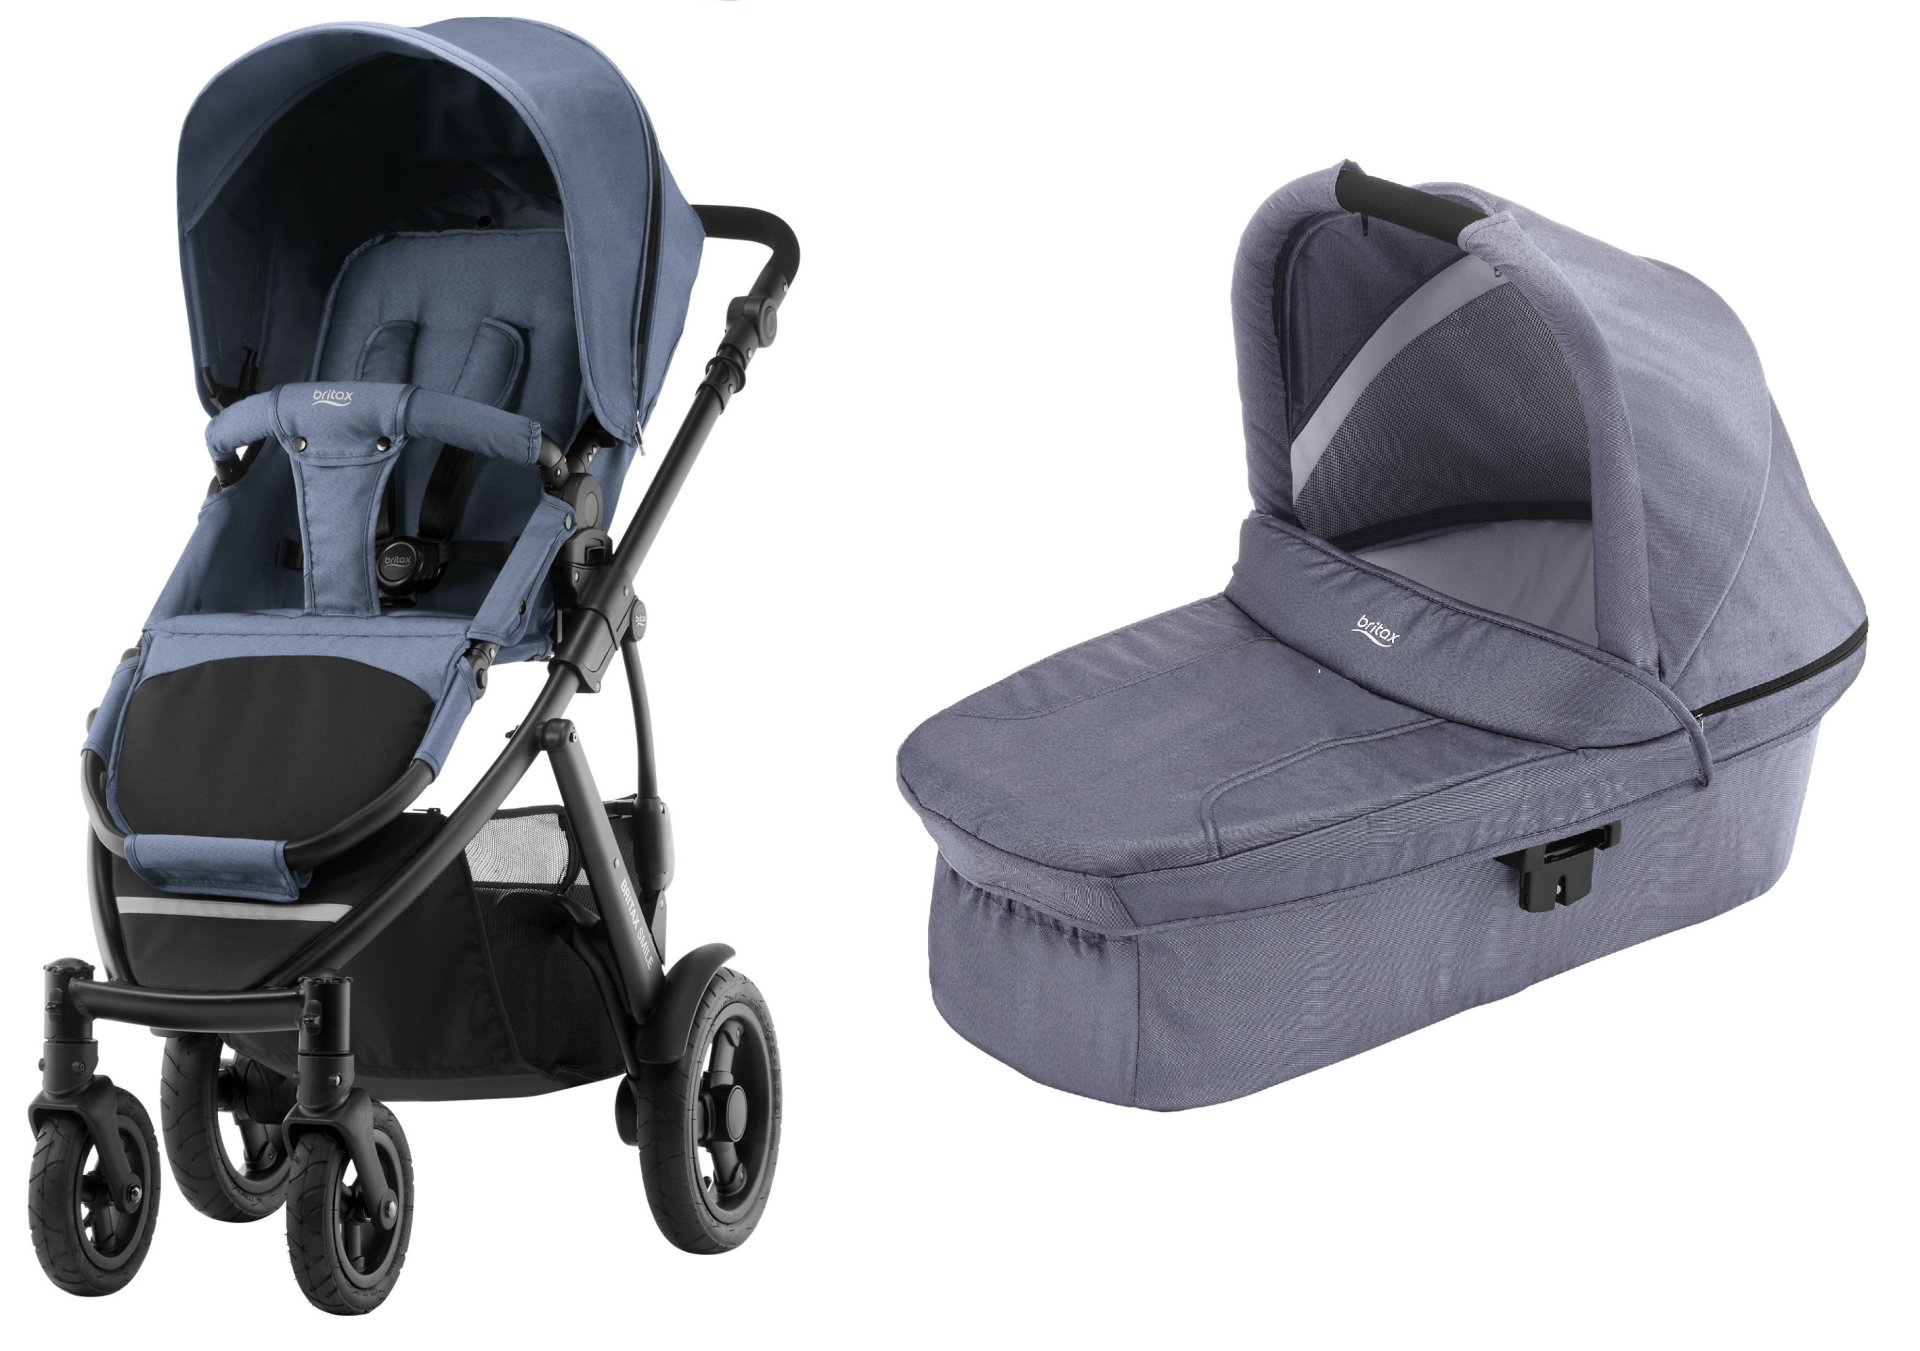 britax r mer smile 2 inkl hard carrycot kinderwagen aufsatz 2019 blue denim online kaufen bei. Black Bedroom Furniture Sets. Home Design Ideas